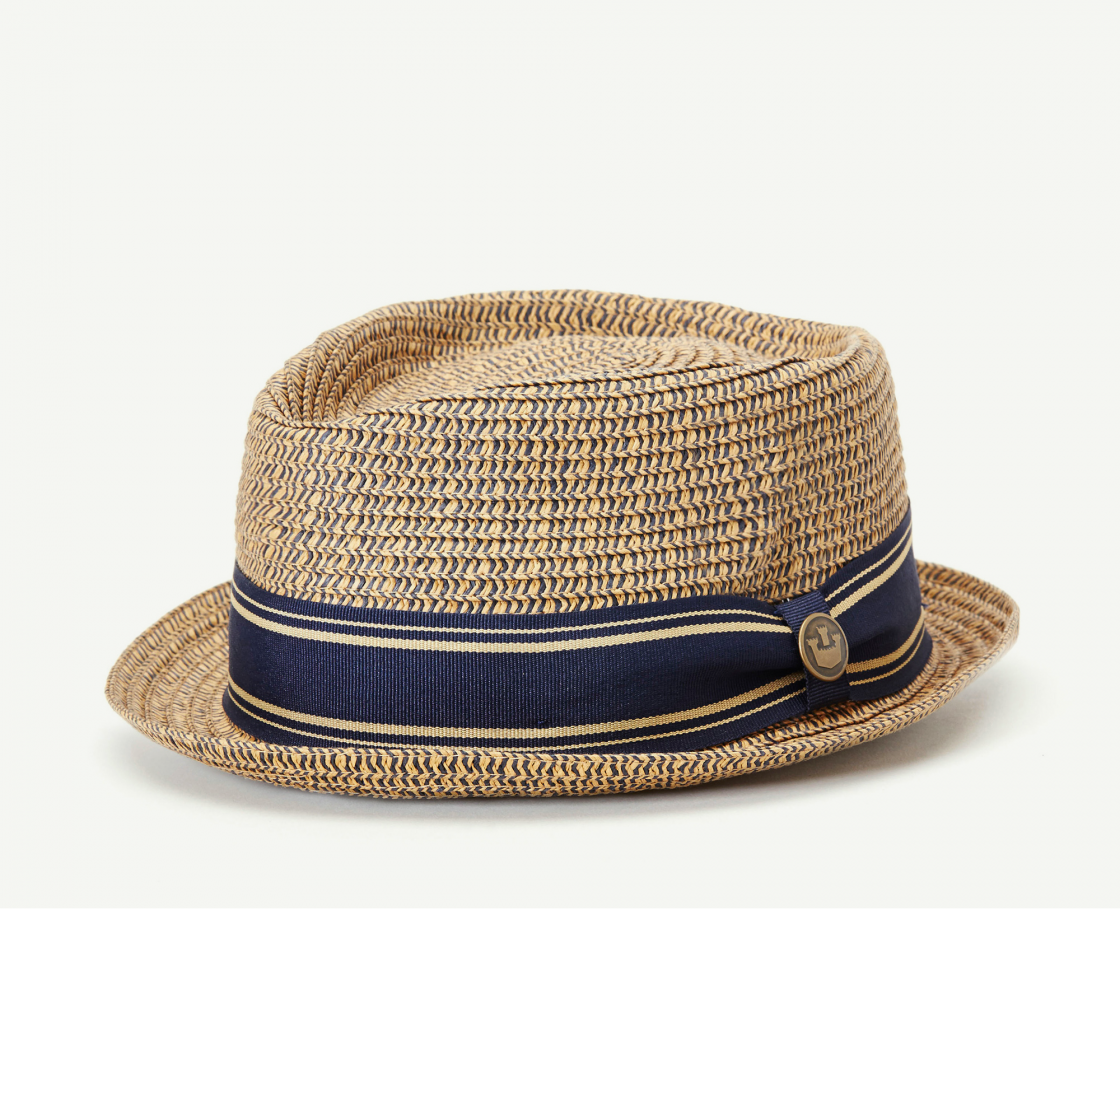 f97ca3a431d Big Boy Kris Tan Straw Porkpie Fedora hat front view